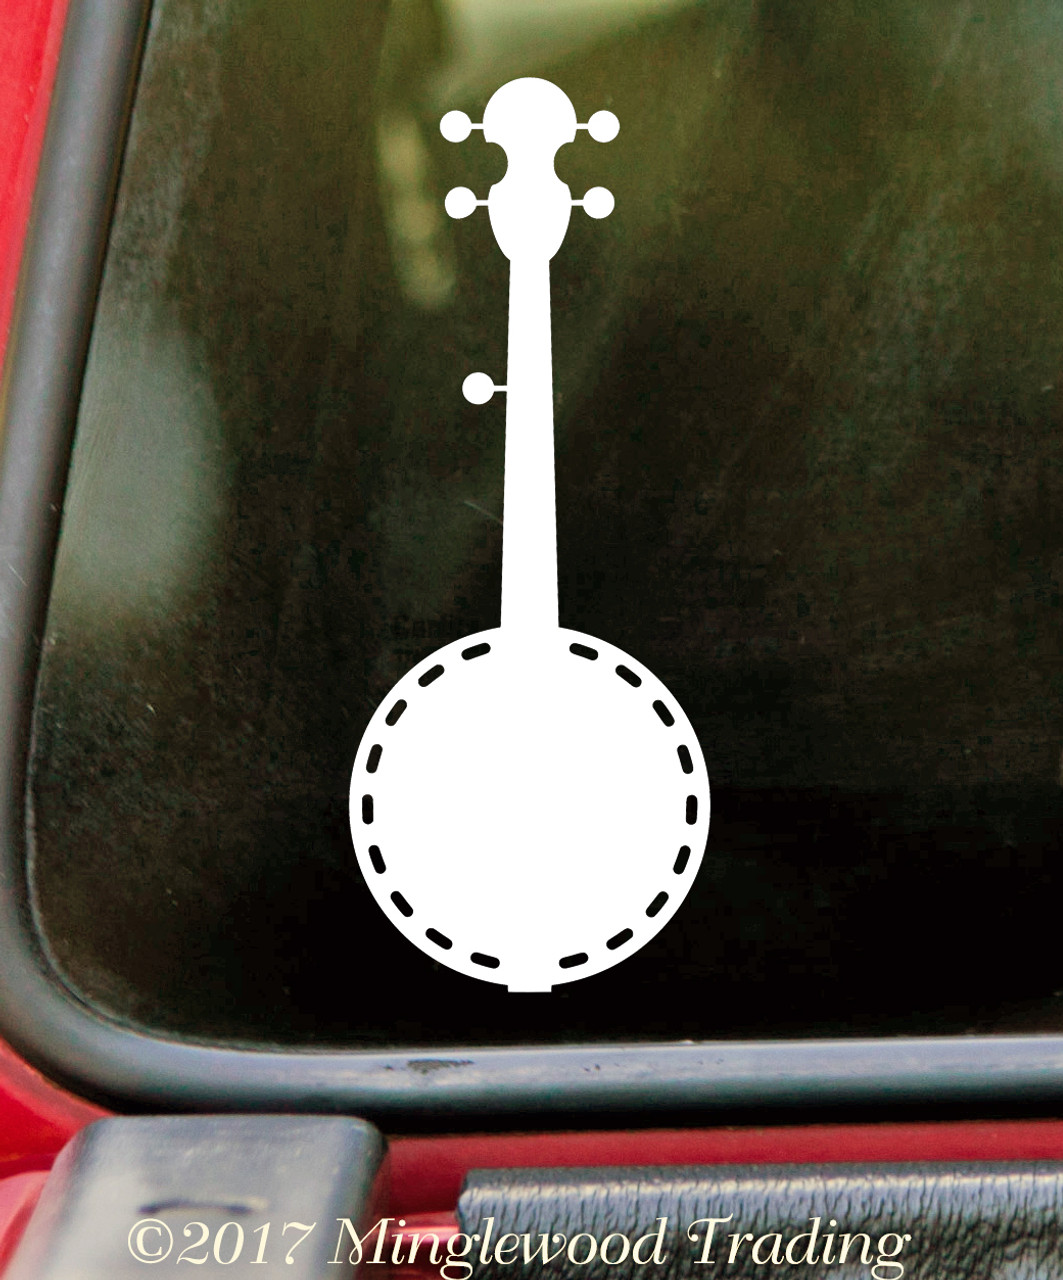 BANJO - Vinyl Decal Sticker - Bluegrass Country Music Picking